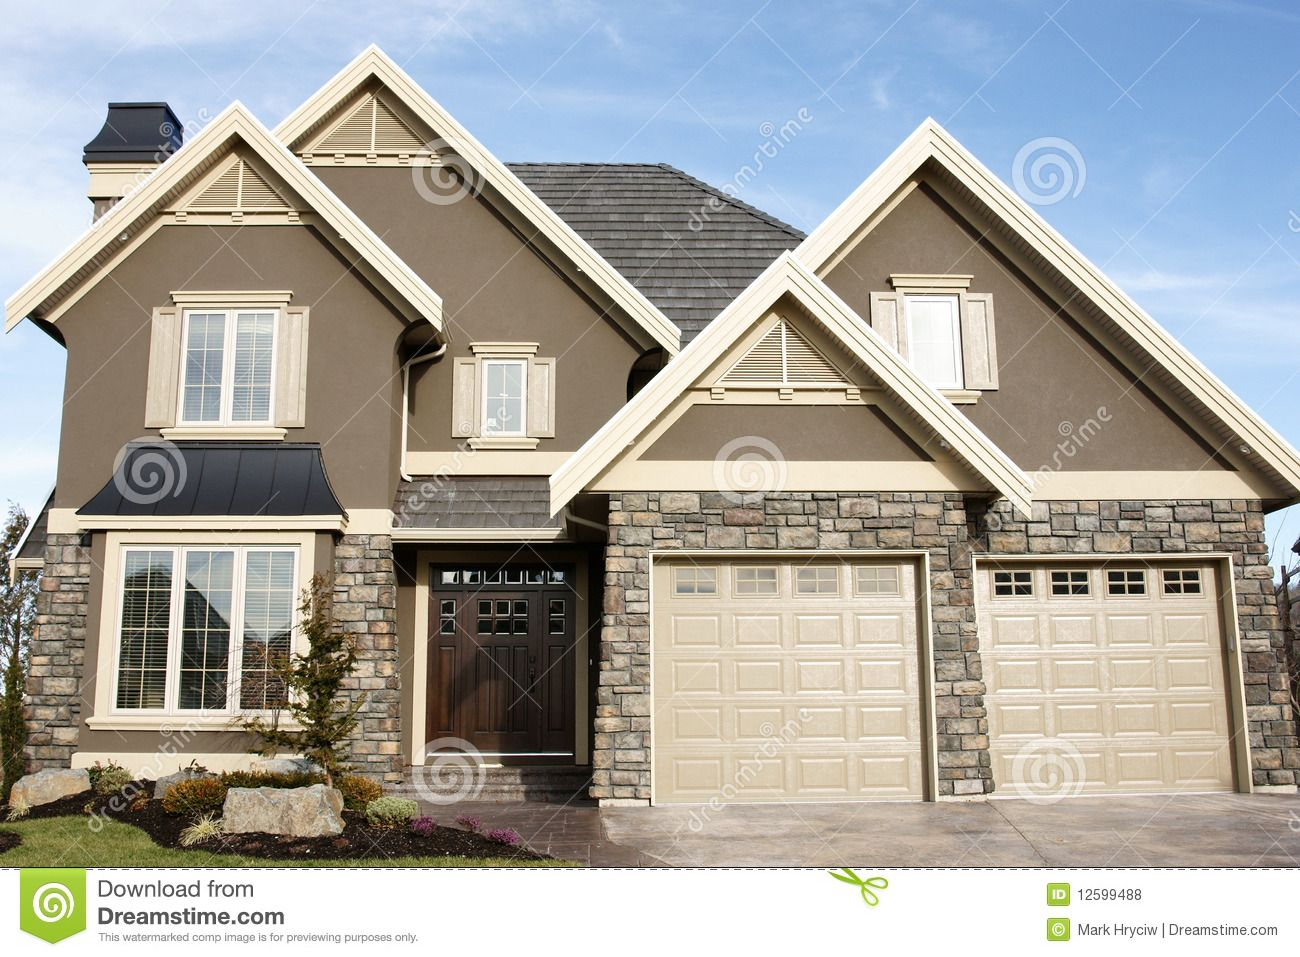 house colors exterior stucco color gallery new home house stucco royalty free stock photos image